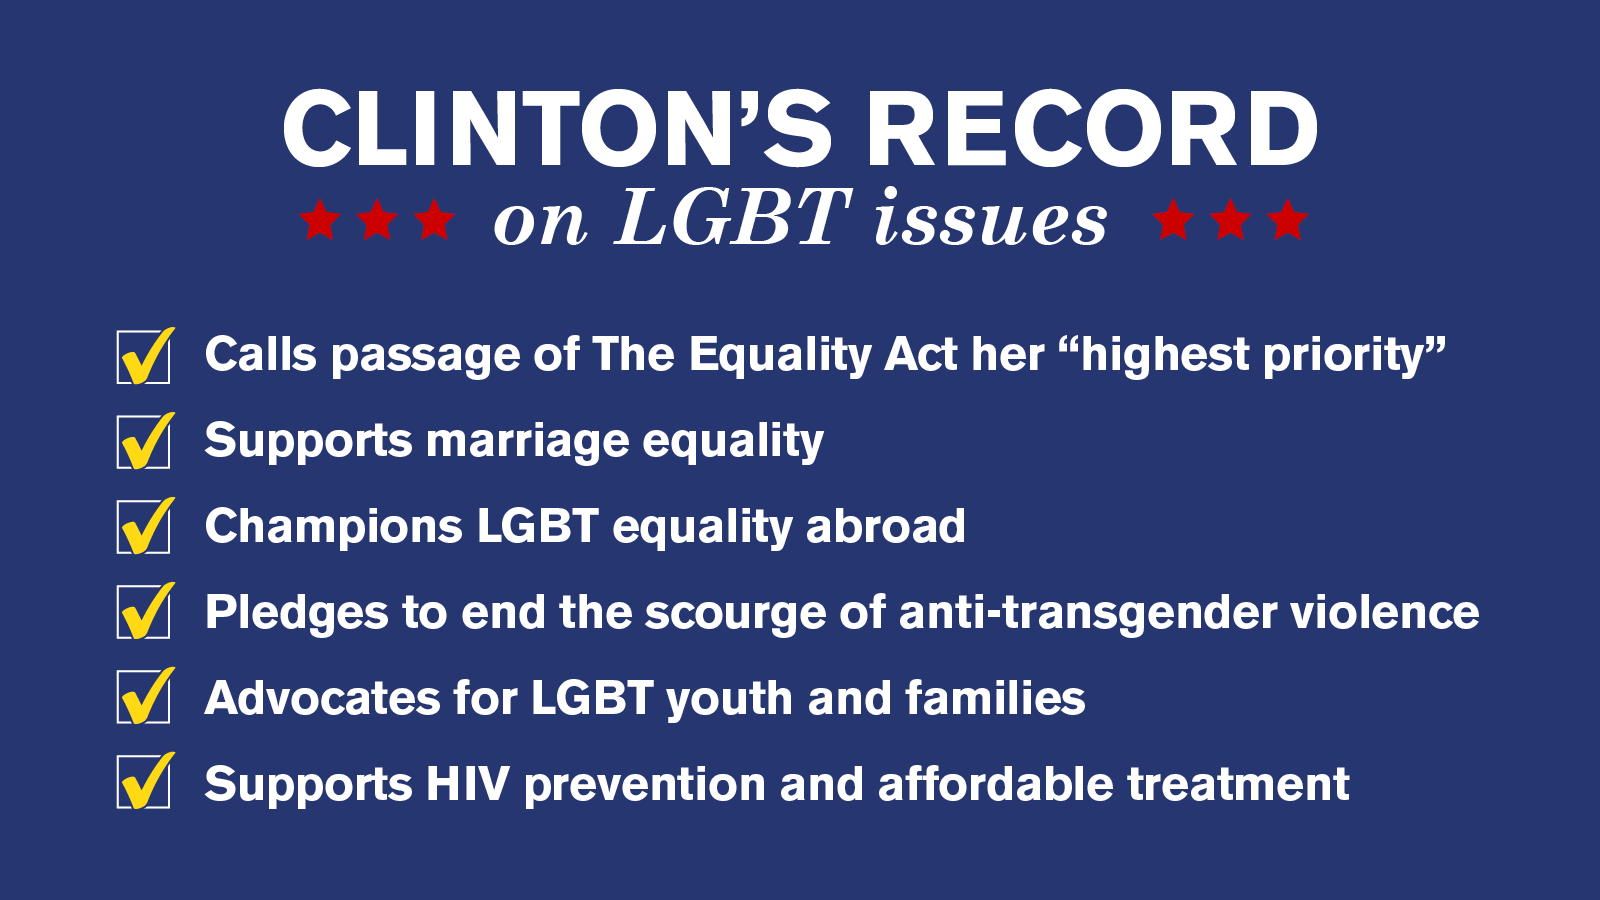 Clinton's record on LGBT issues